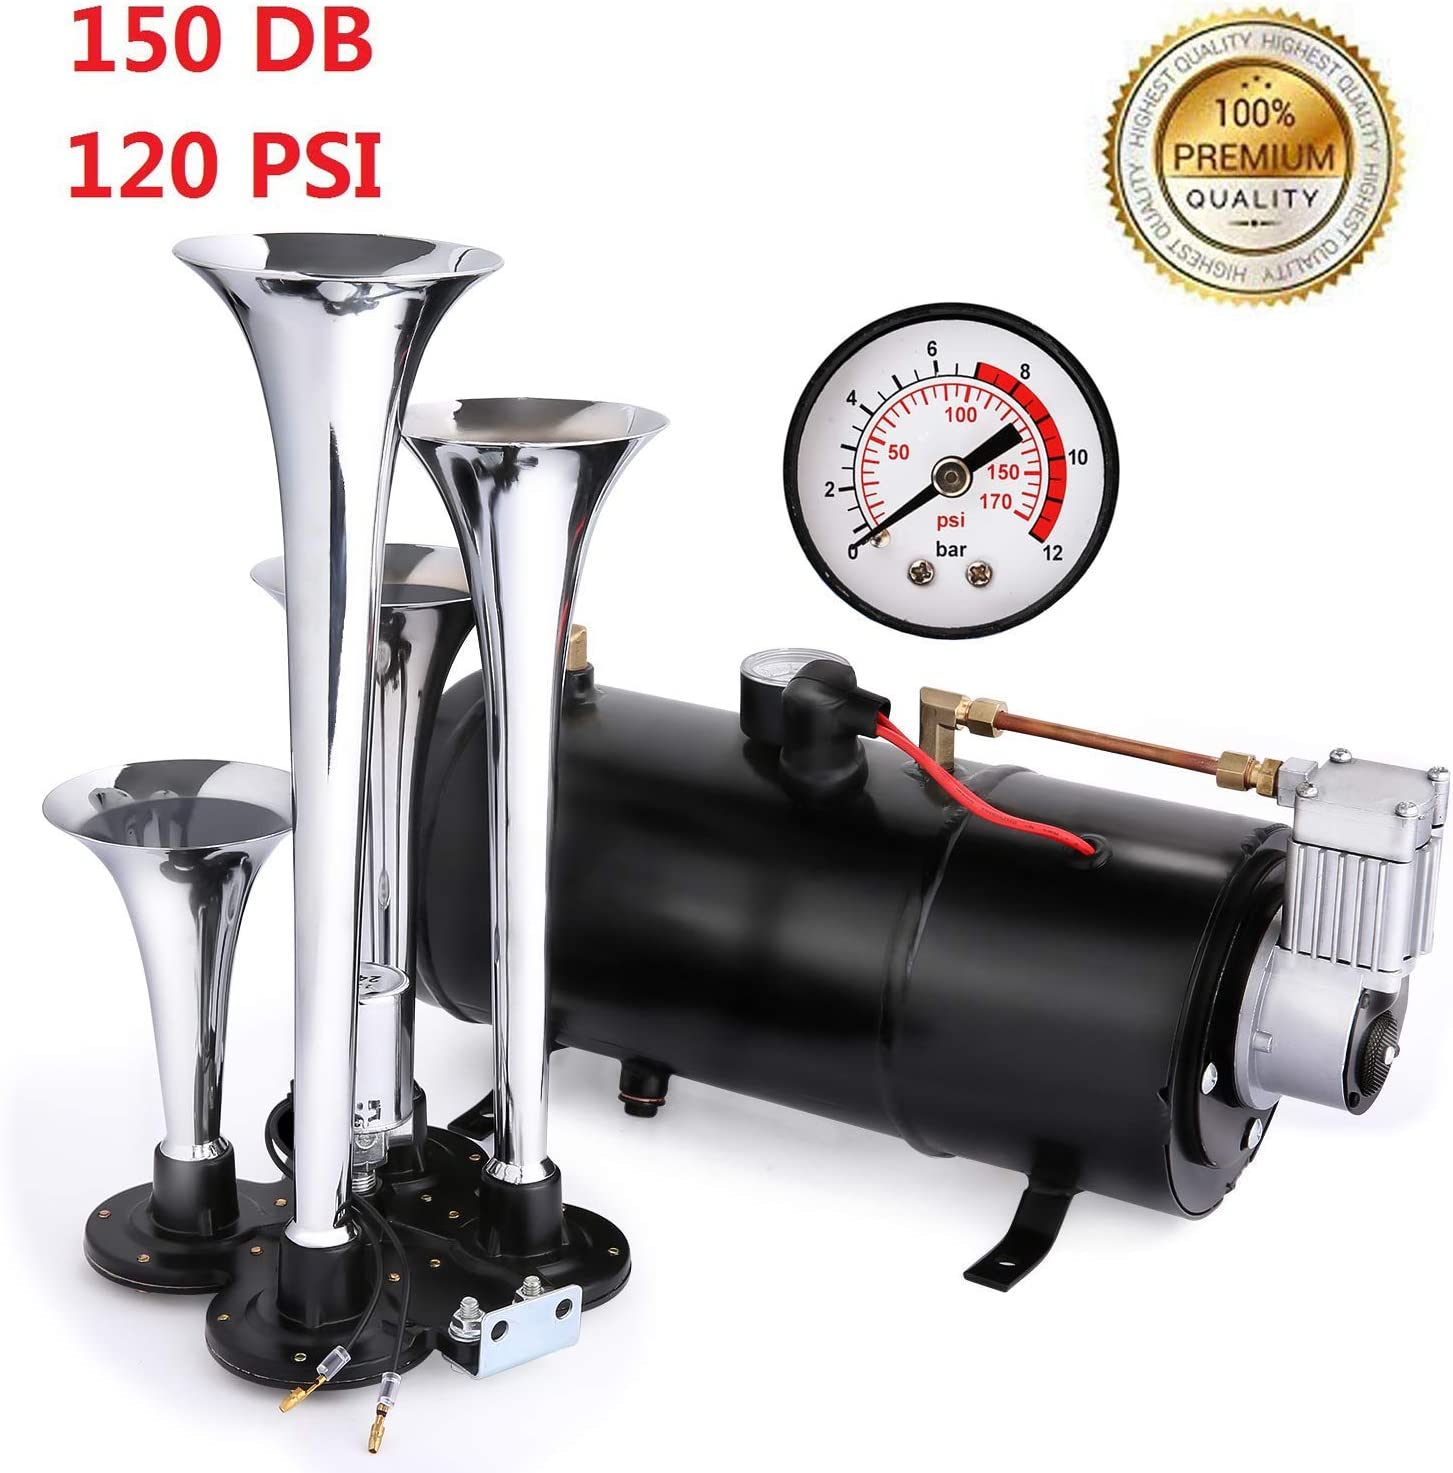 12V 150db Air Horn kit,Super Loud 18 Inches Chrome Zinc Single Trumpet Truck Air Horn with Compressor for Any Car Truck Lorry Train Boat /… black